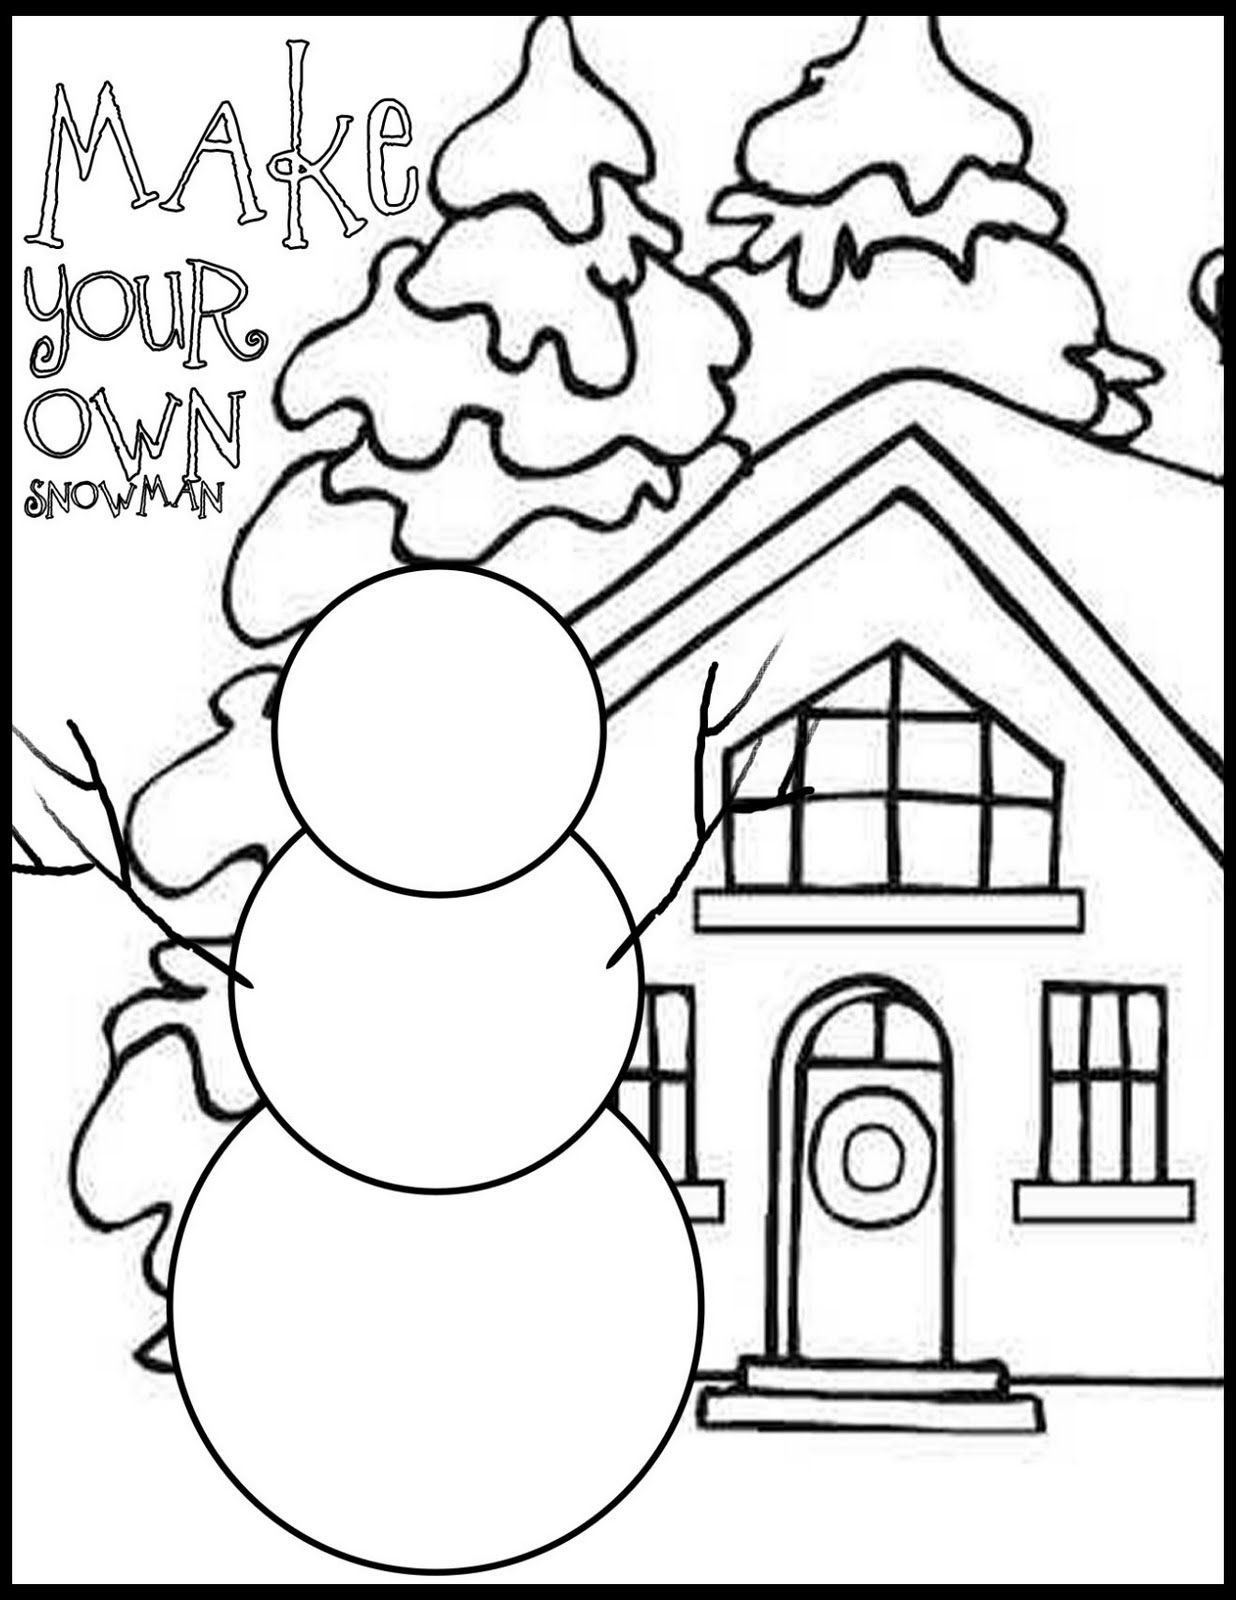 Everyday Mom Ideas Draw Your Own Snowman Coloring Page Snowman